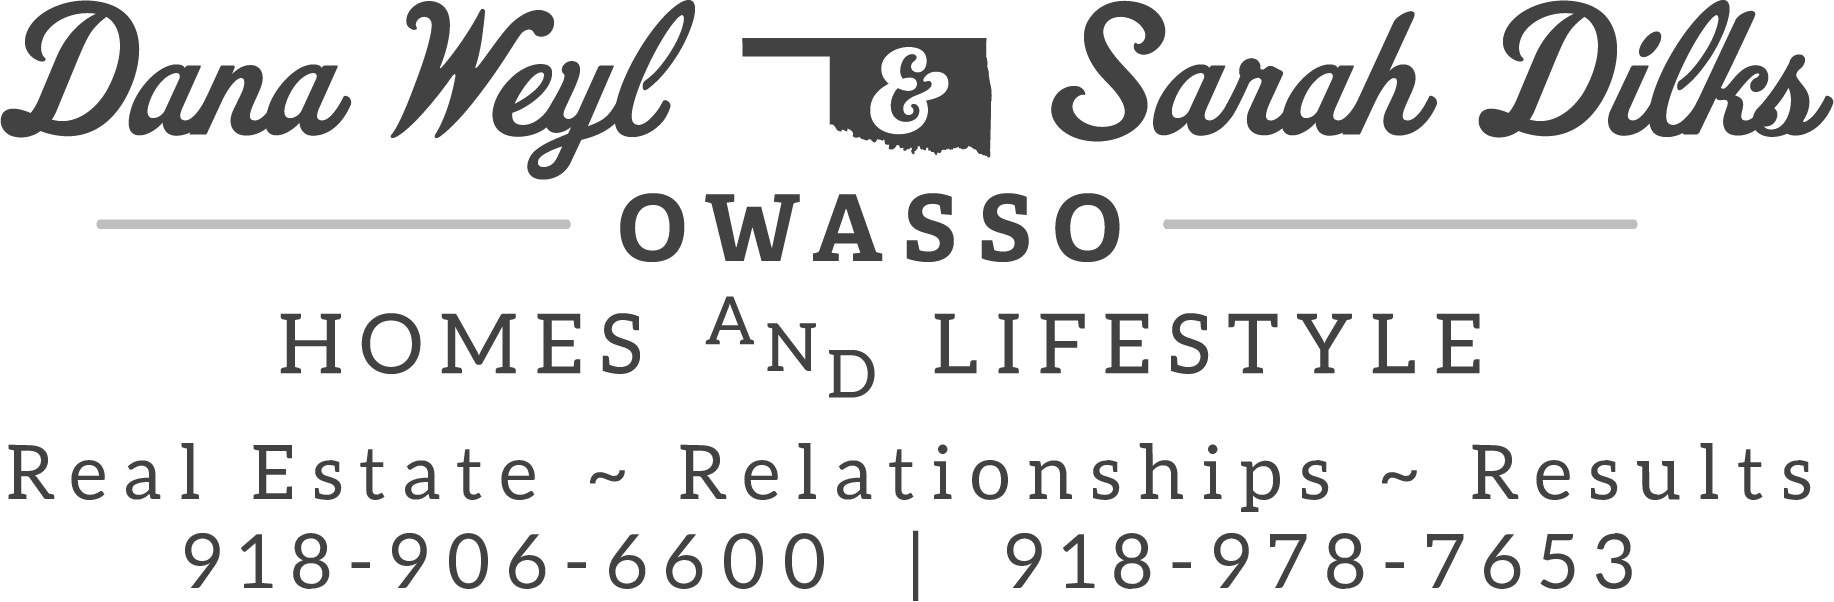 OWASSO HOMES AND LIFESTYLE logo